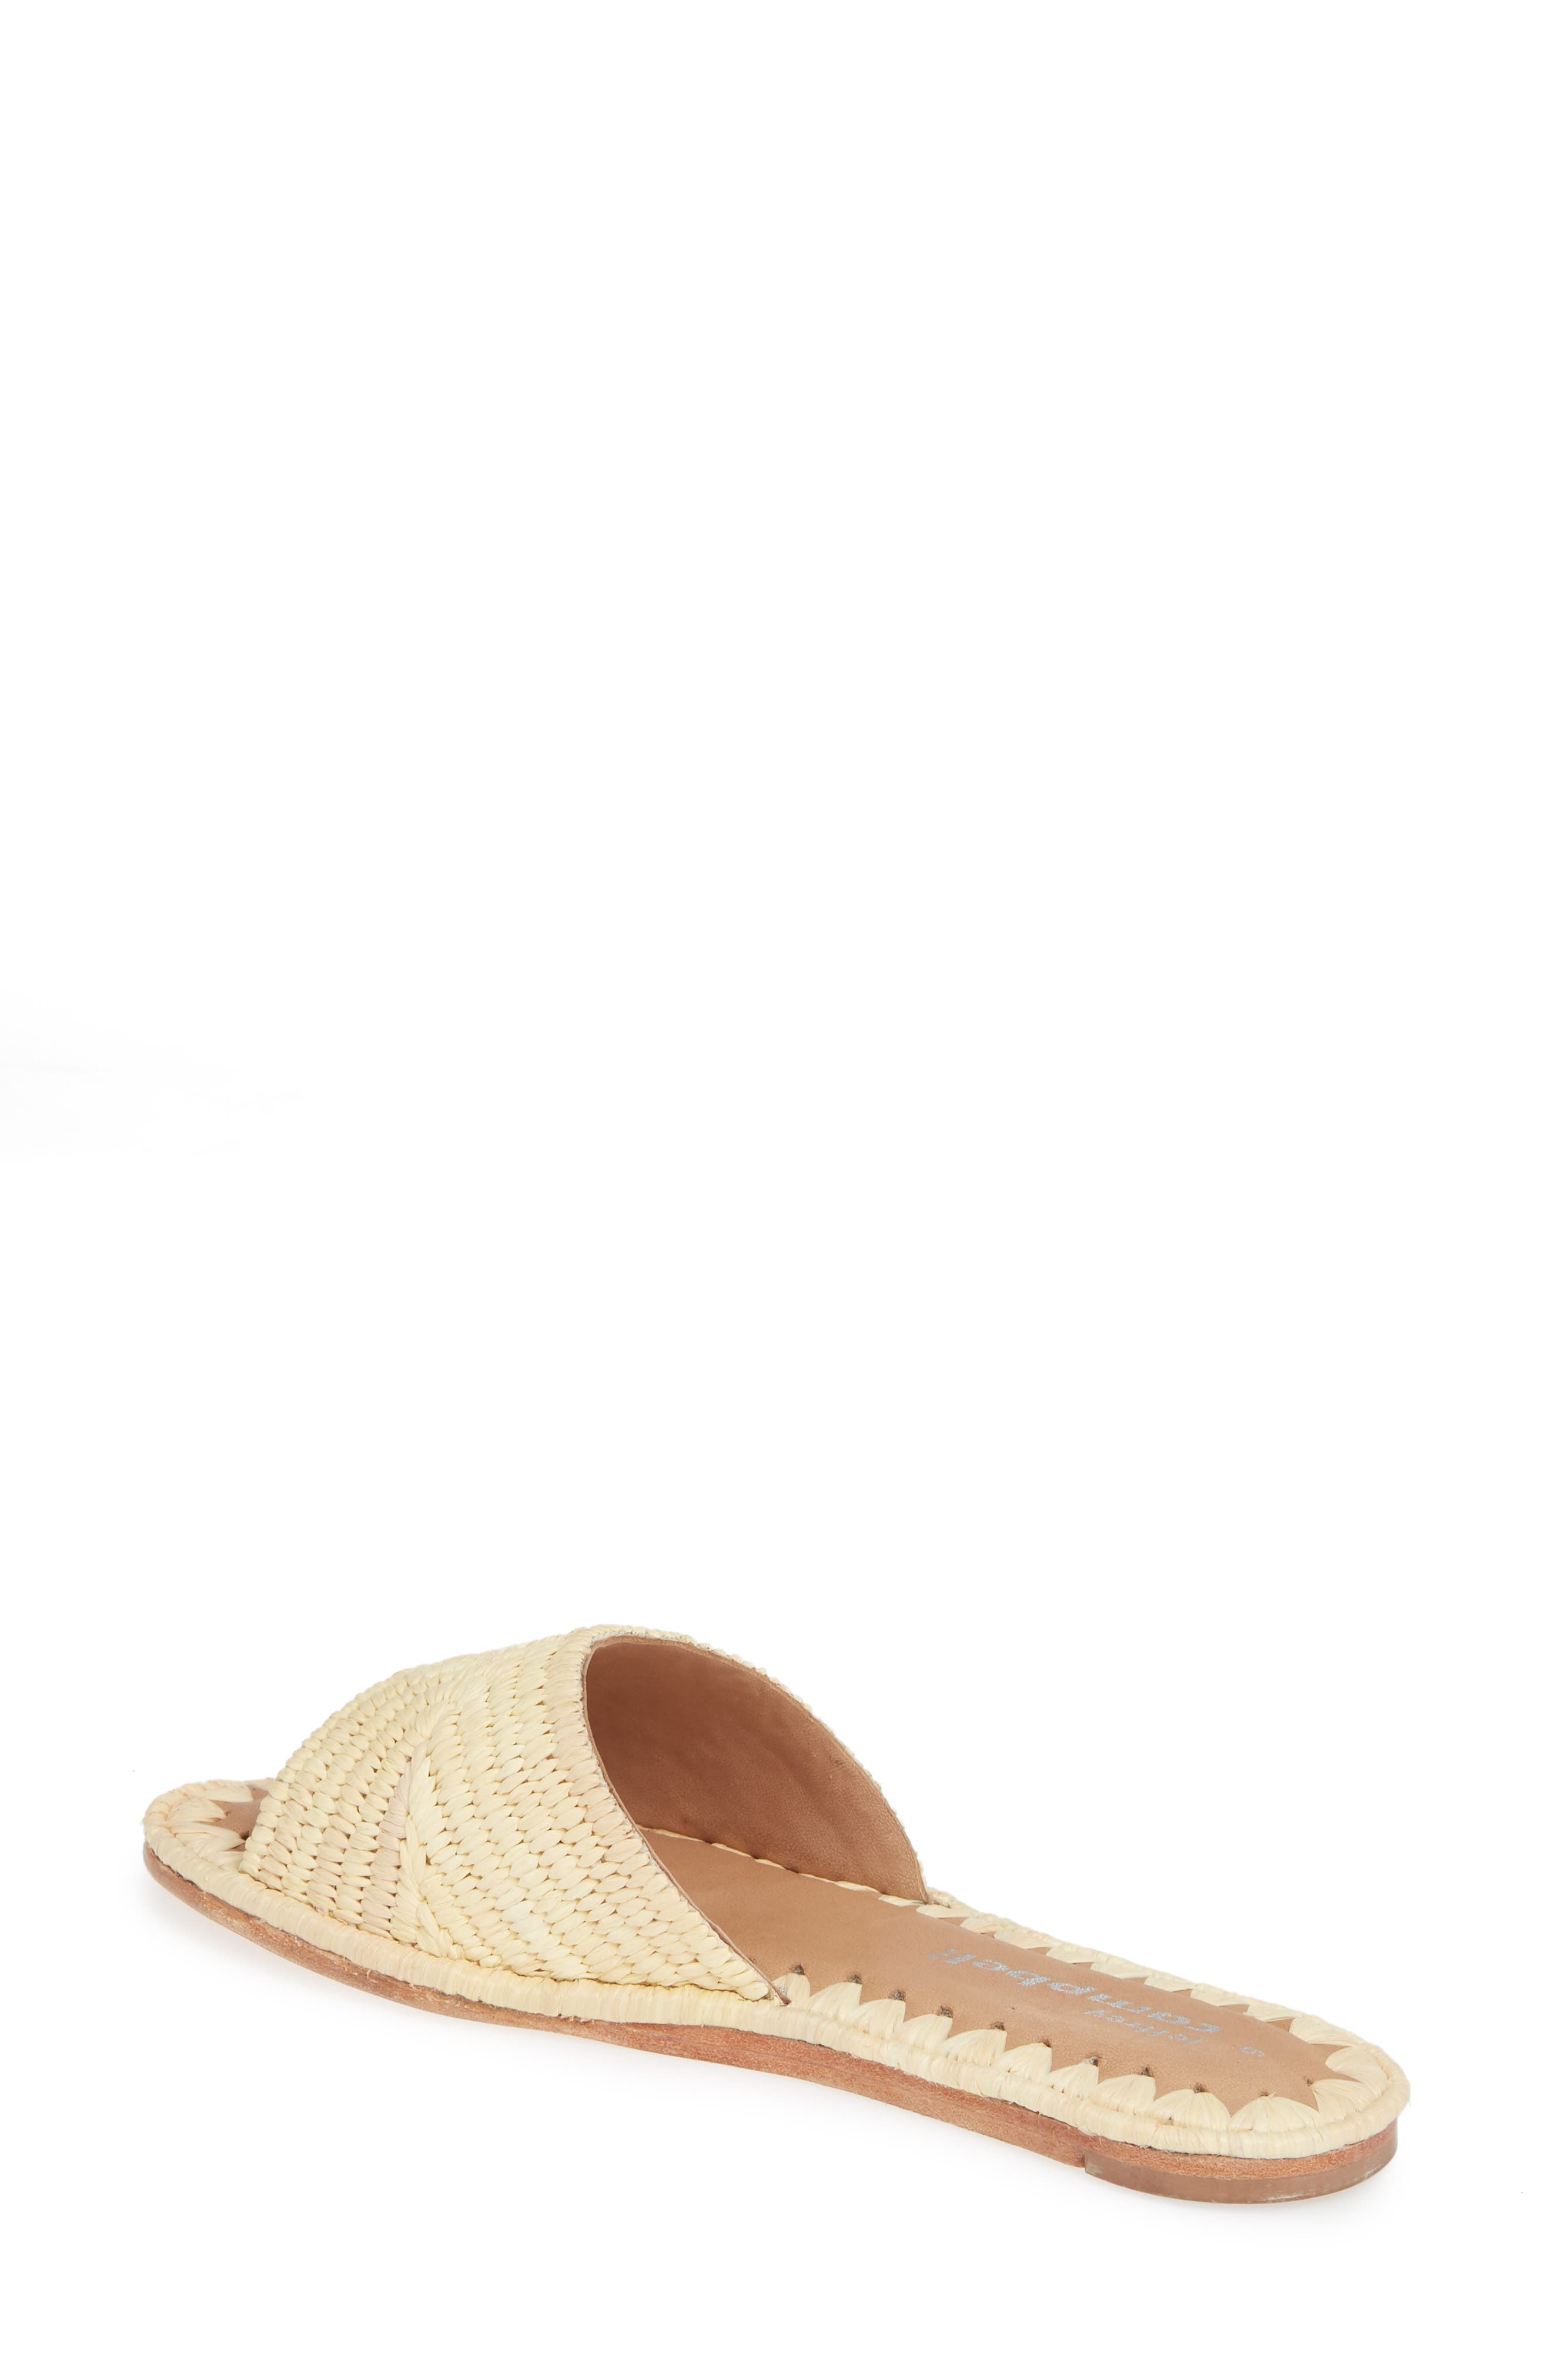 Dane Raffia Slide Sandal,                             Alternate thumbnail 2, color,                             NATURAL RAFFIA